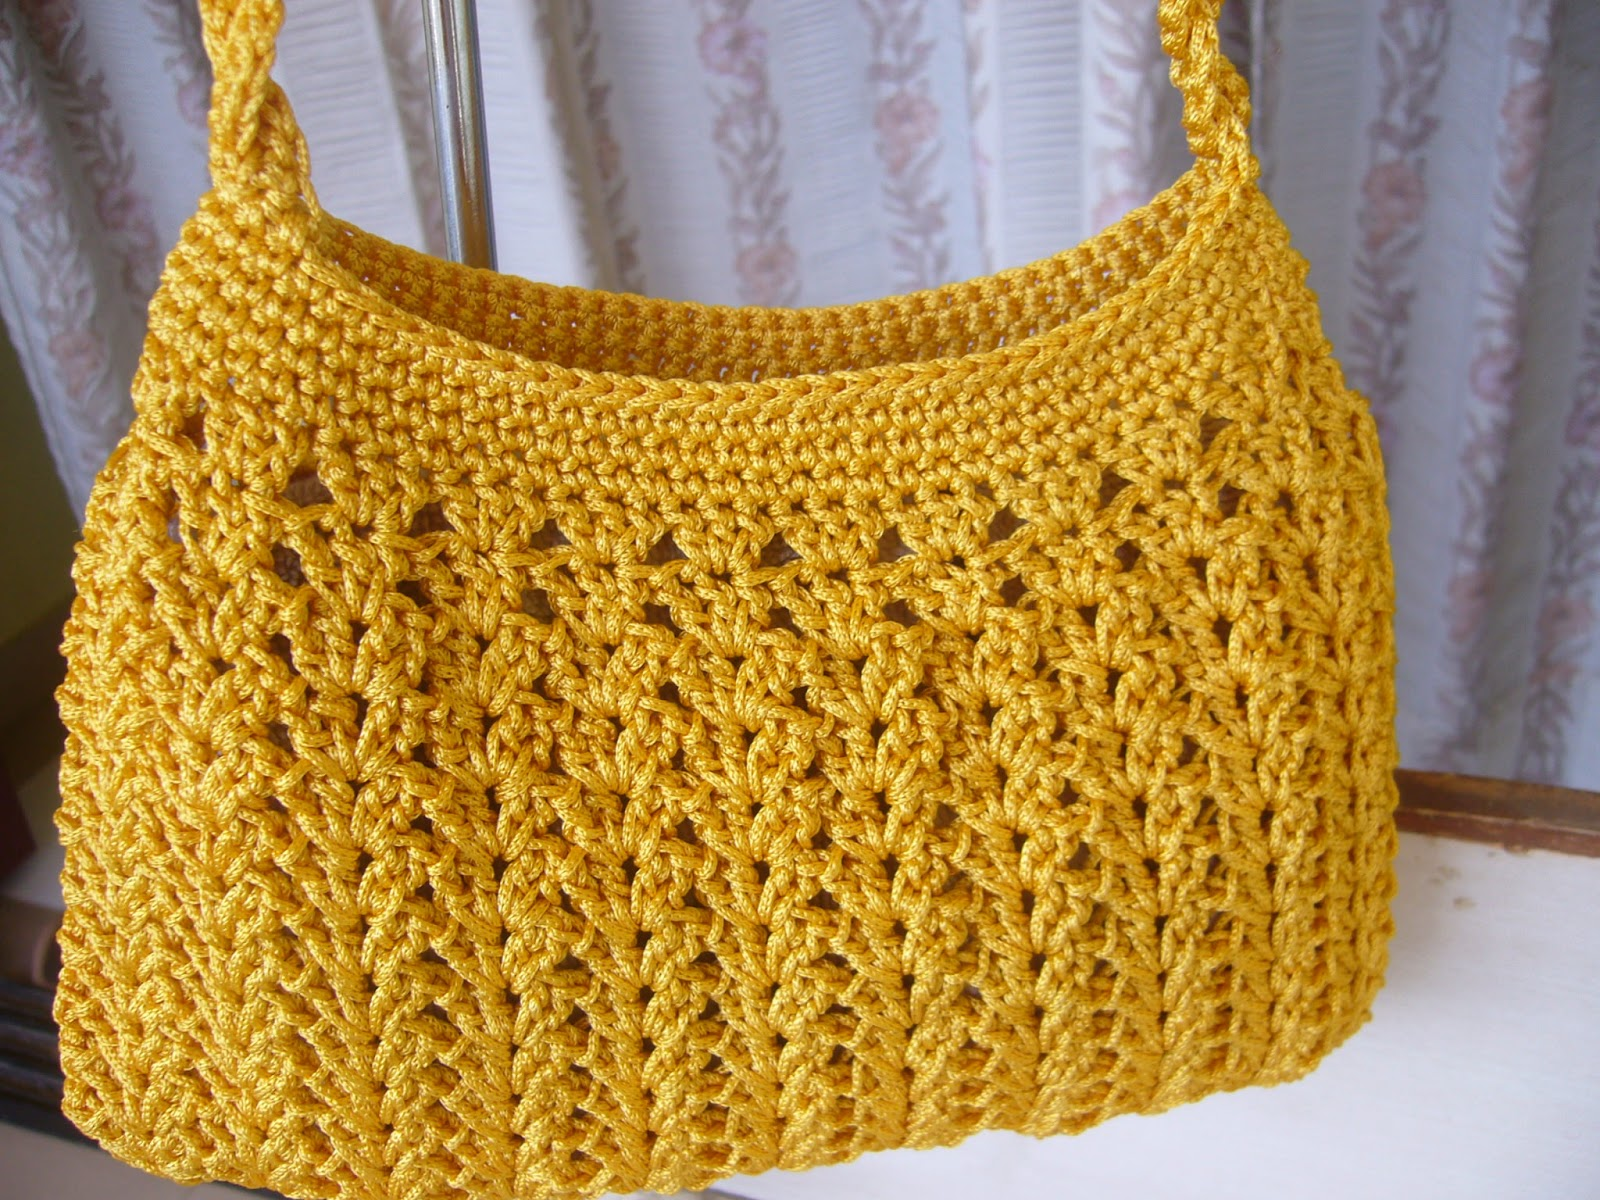 Crochet Patterns For Purses : Crochetkari: Golden yellow crochet purse